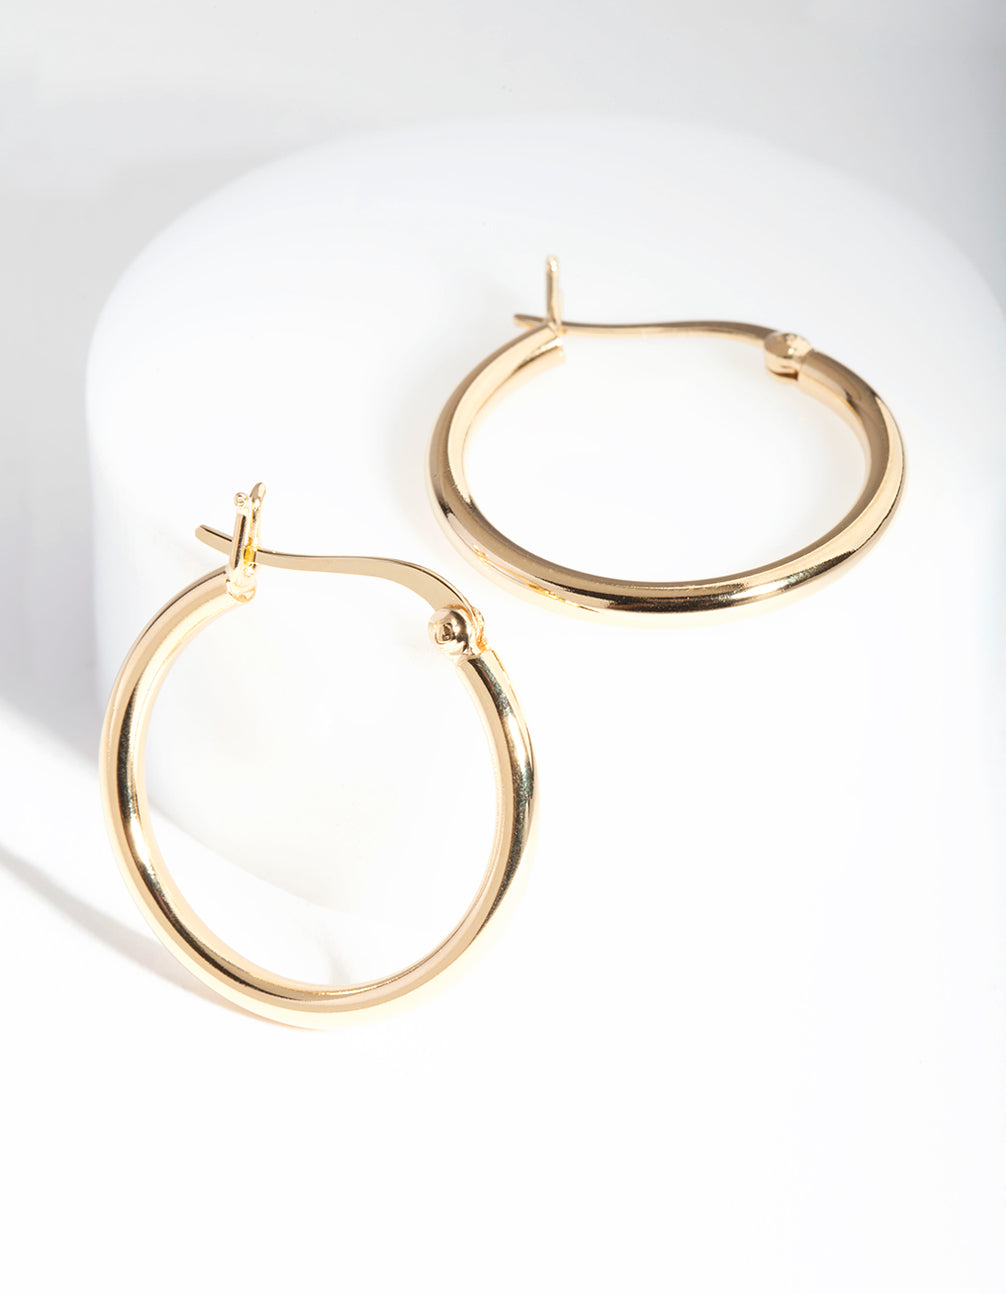 Gold Plated Sterling Silver 20mm Hoop Earrings